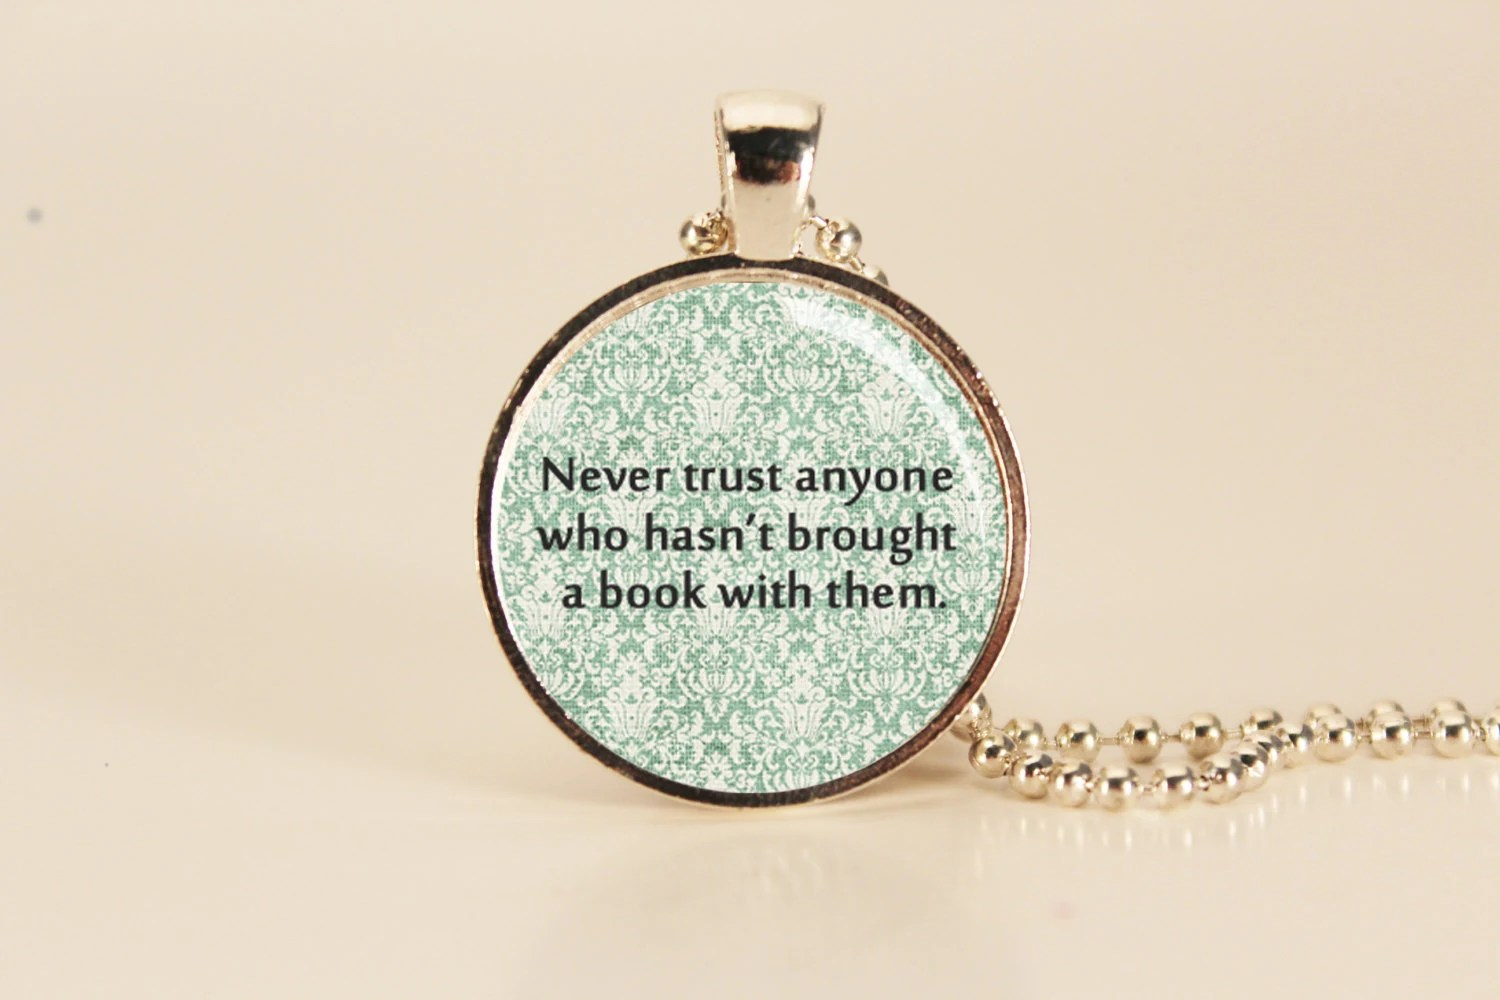 Lemony Snicket Quote Charm Necklace for Book Lovers